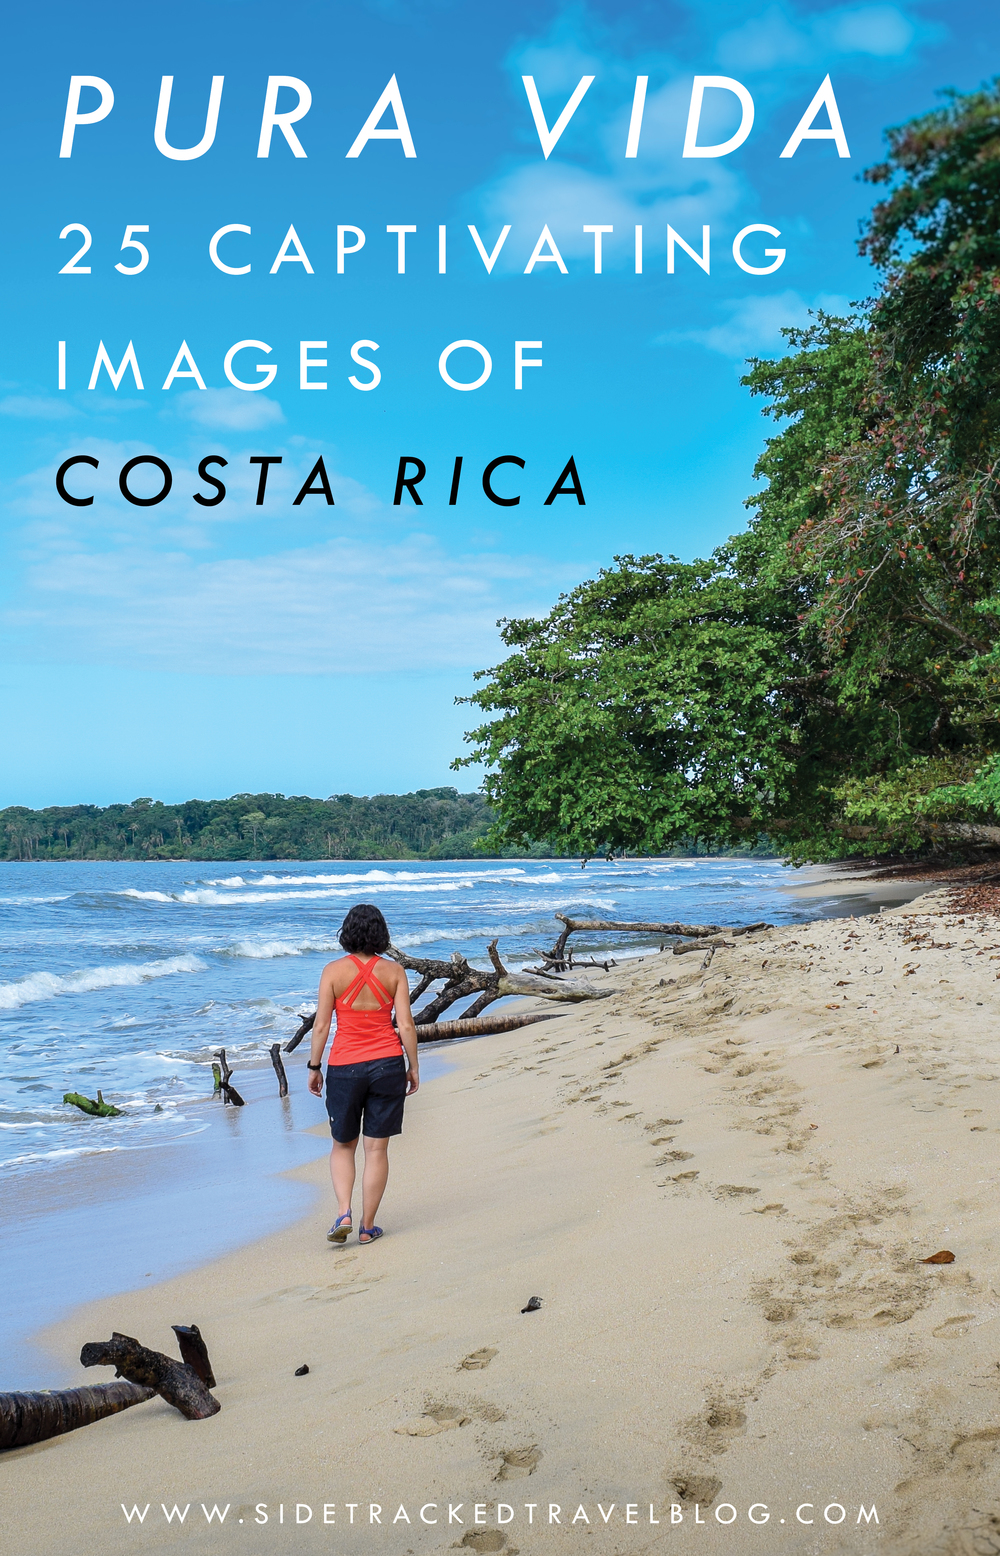 Costa Rica is a small country full of dense rainforest, down-to-earth locals, beach bums and surfer dudes, tons of sloths, and some of the prettiest postcard-worthy beaches in Central America. Here are 25 captivating images of Costa Rica.